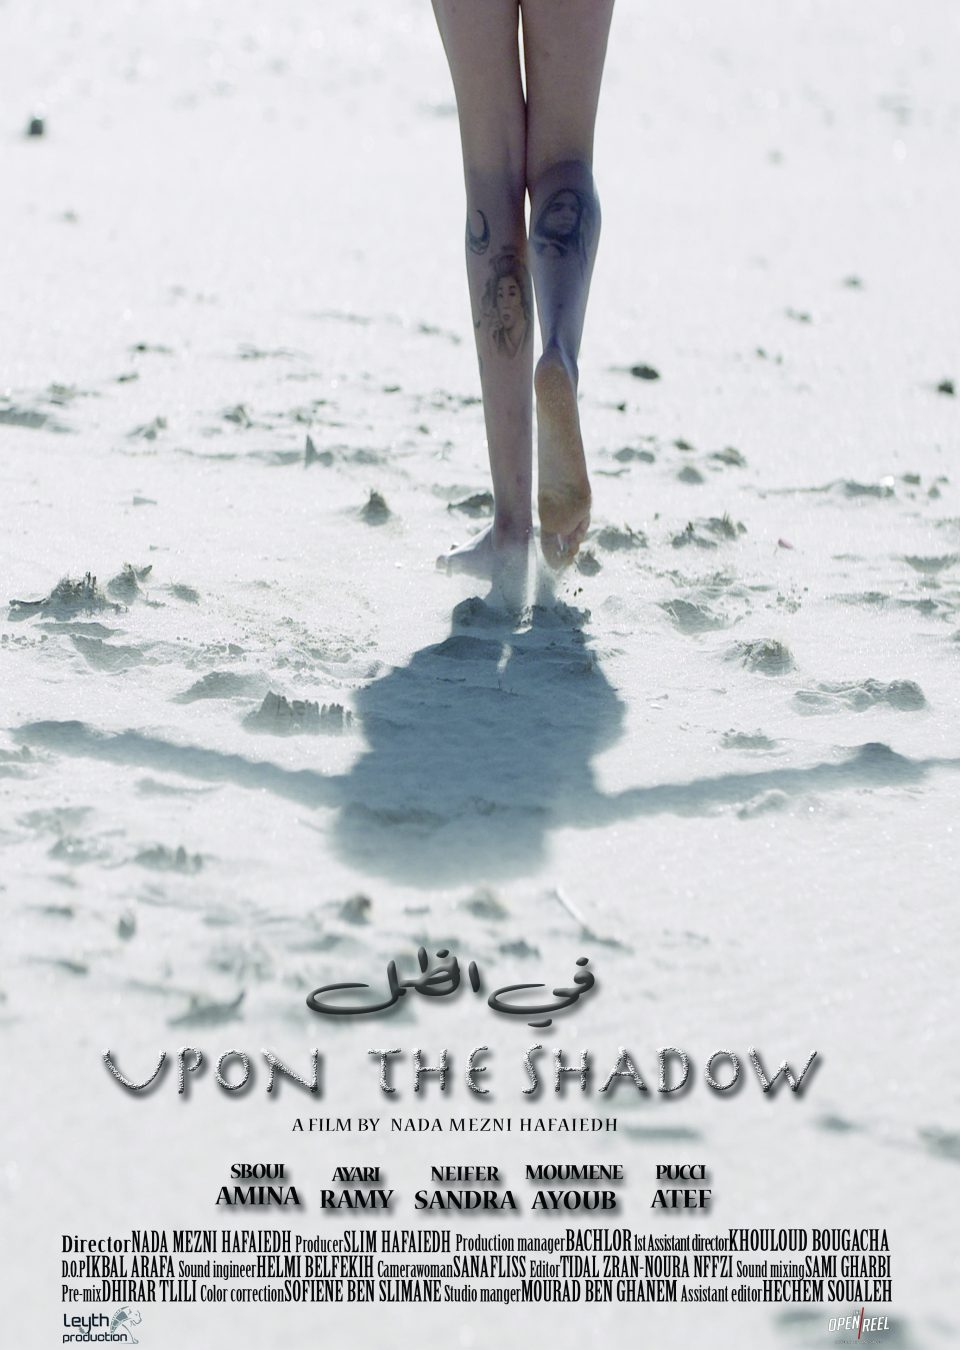 new-poster THE OPEN REEL upontheshadow